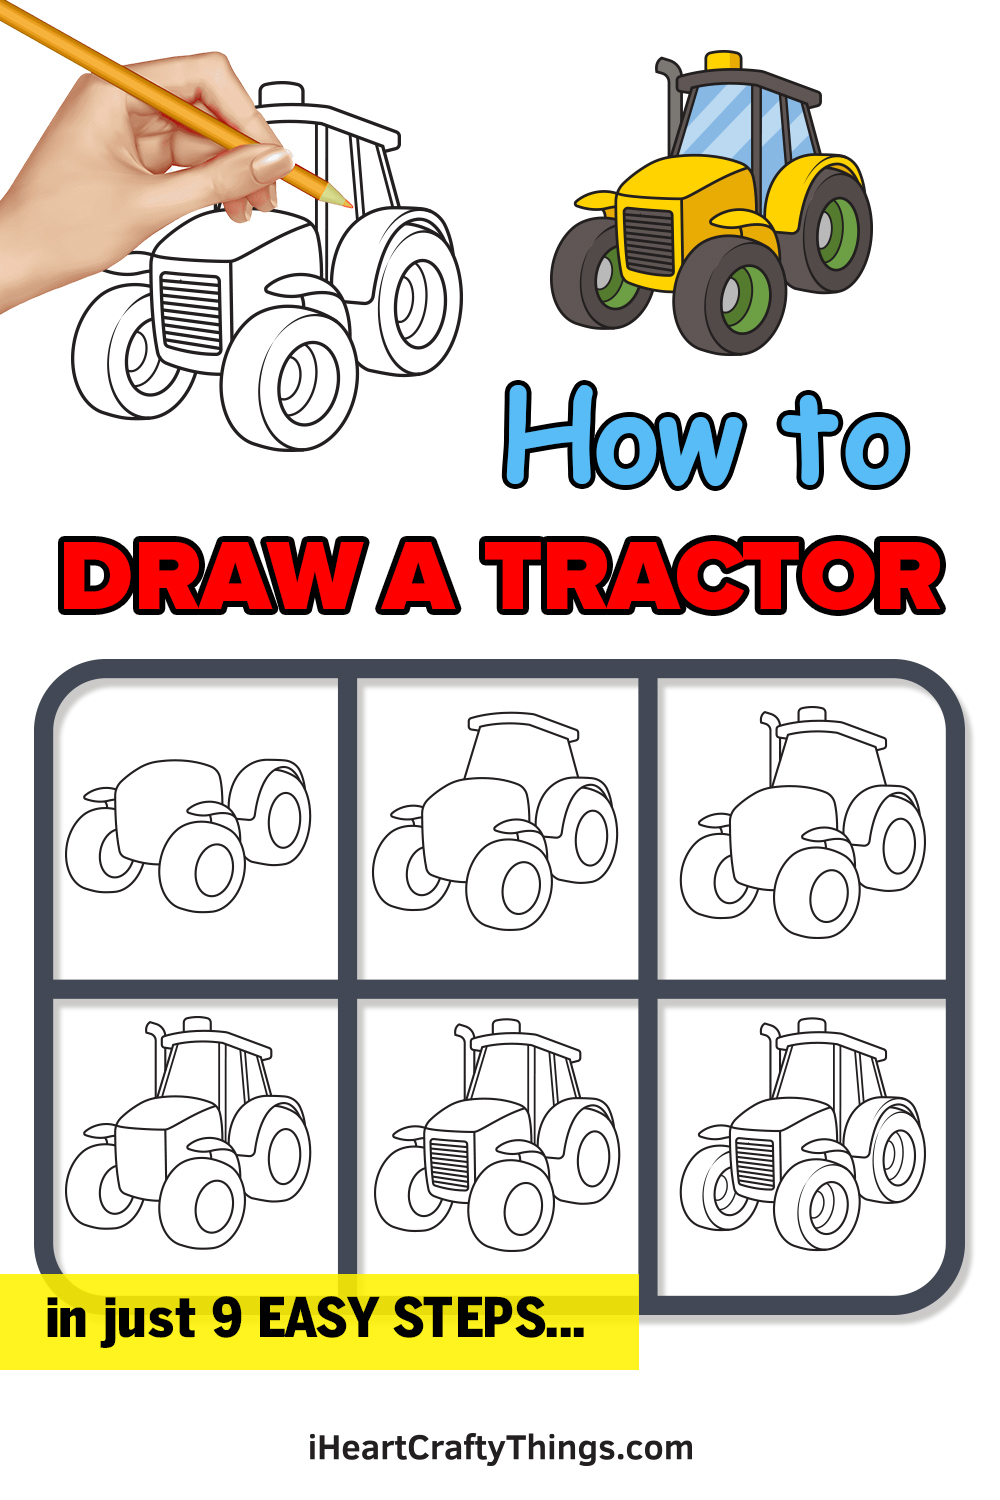 how to draw a tractor in 9 easy steps